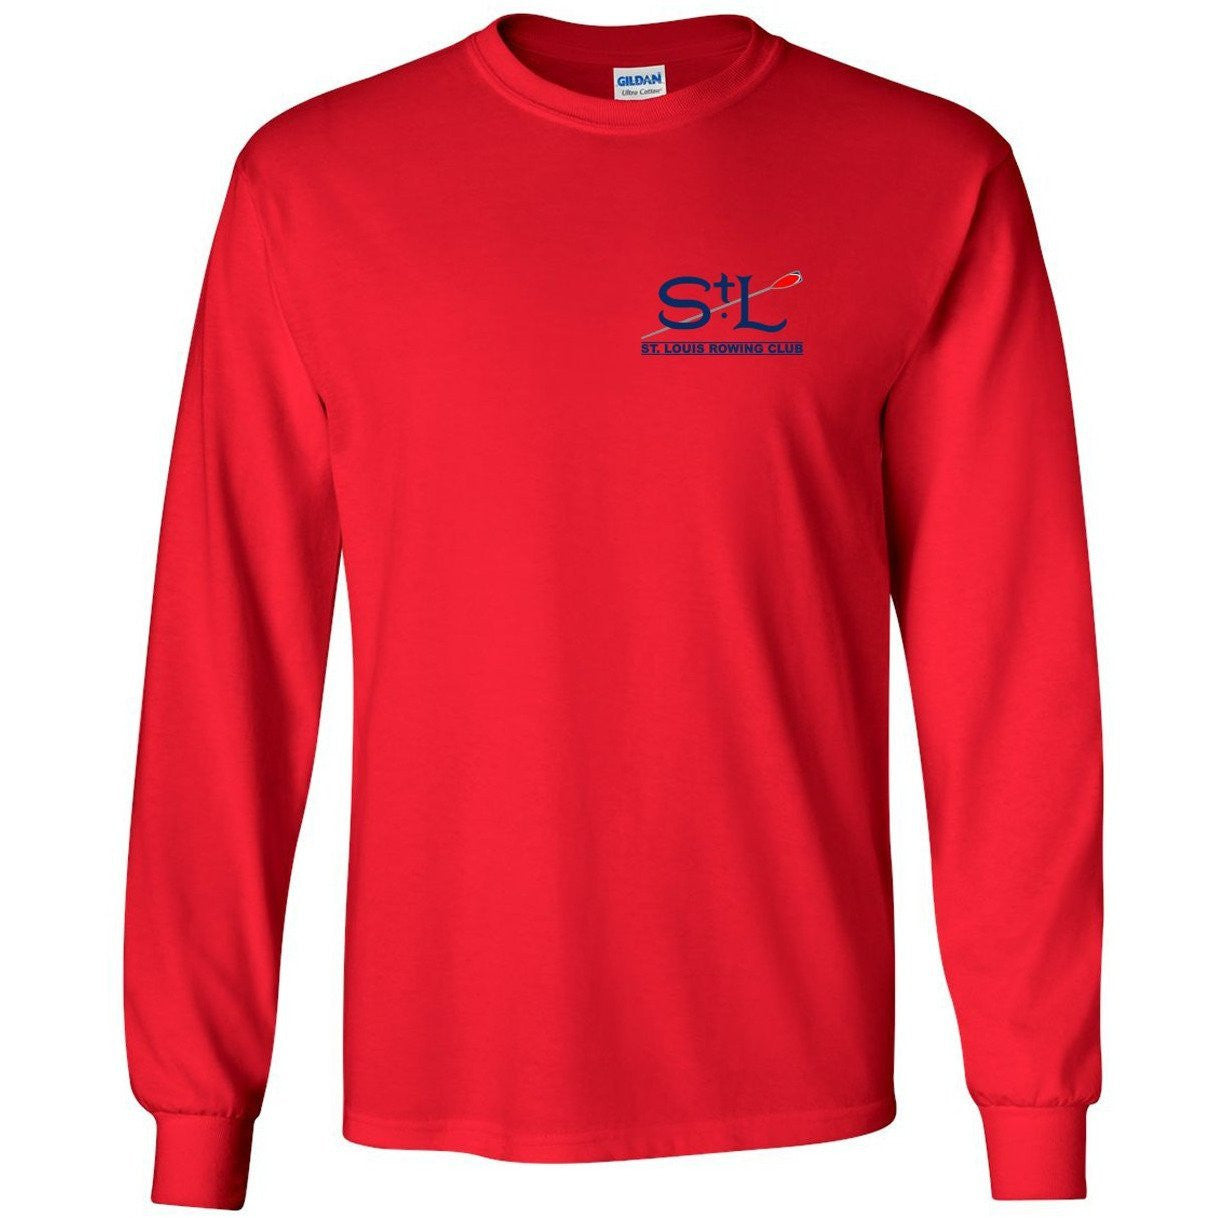 St. Louis Rowing Club Long Sleeve Cotton T-Shirt